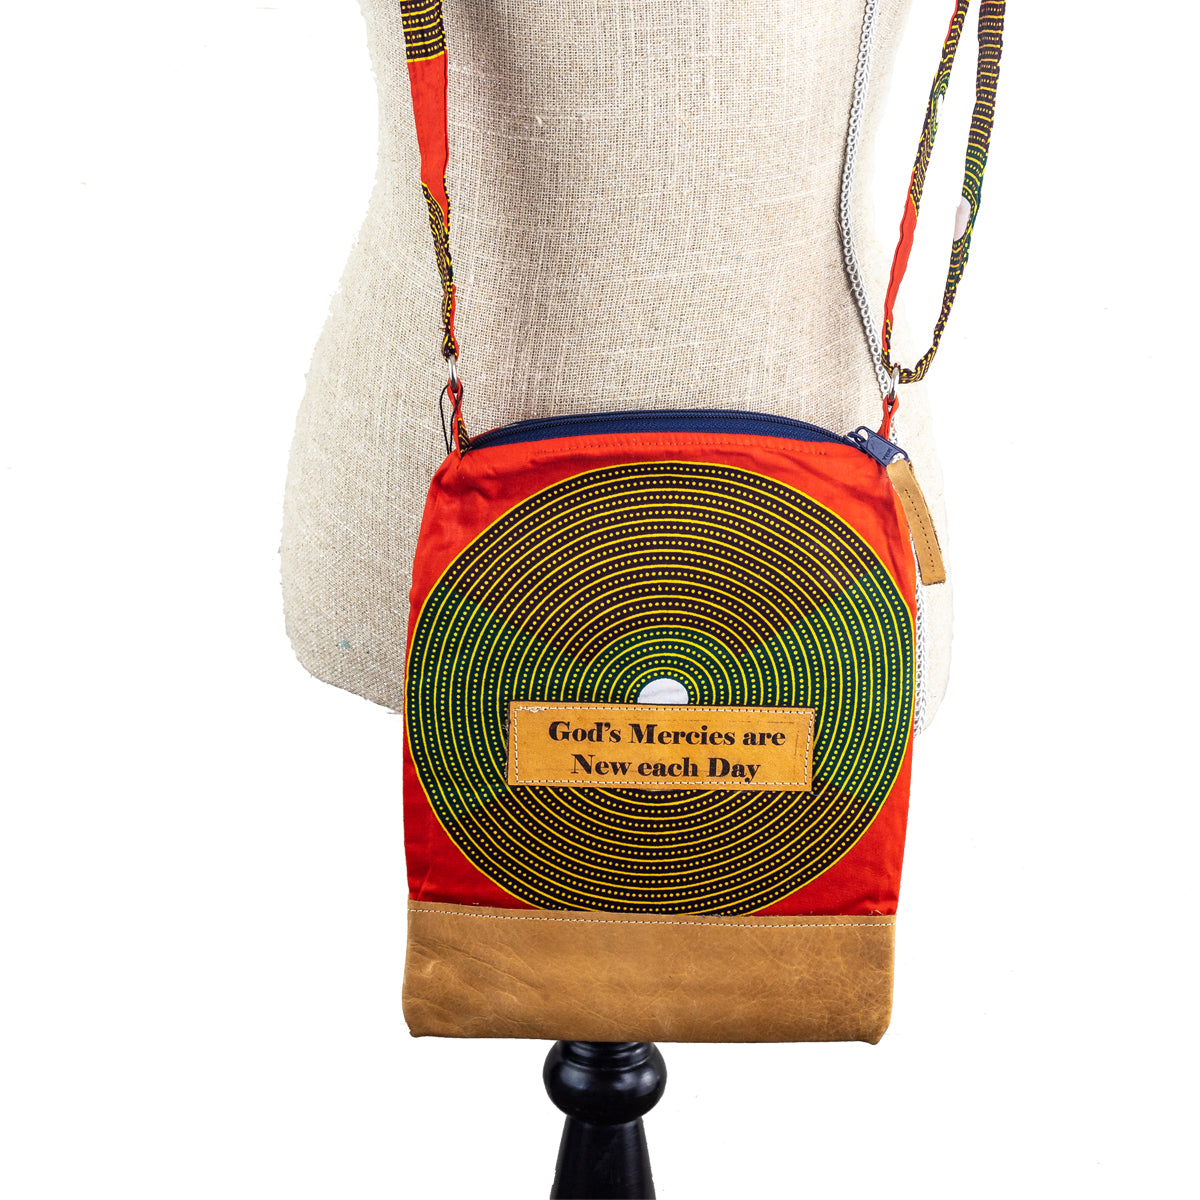 Fabric & Leather Crossbody Purse - God's Mercies